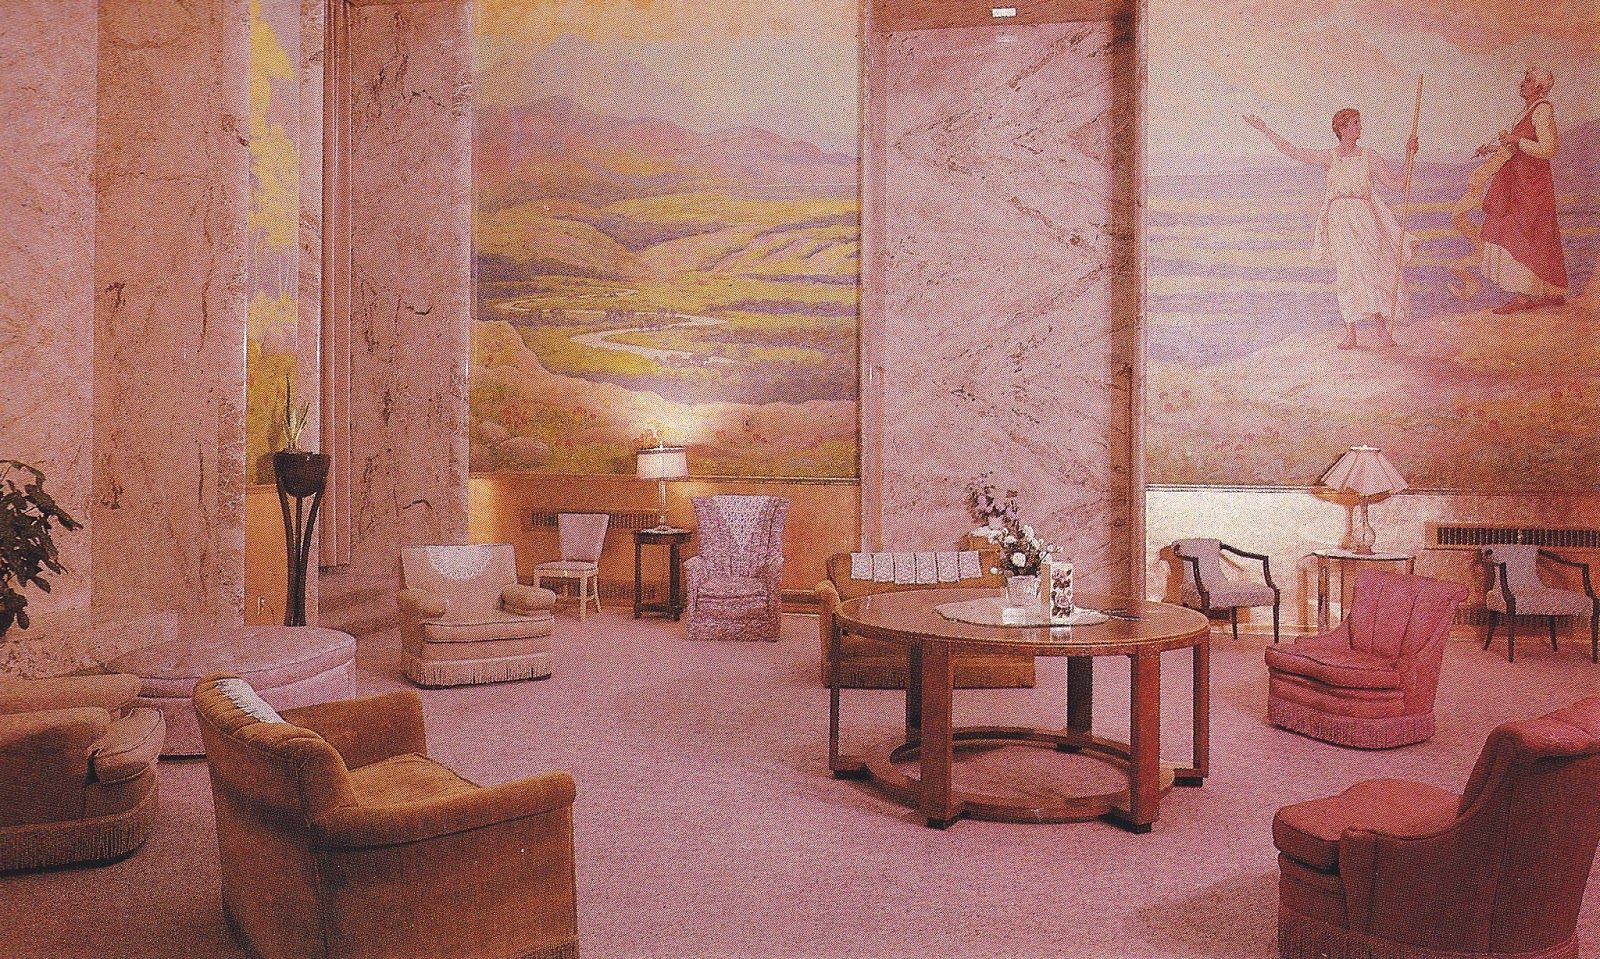 Published photo by the LDS church of a portion of the Celestial Room inside temple